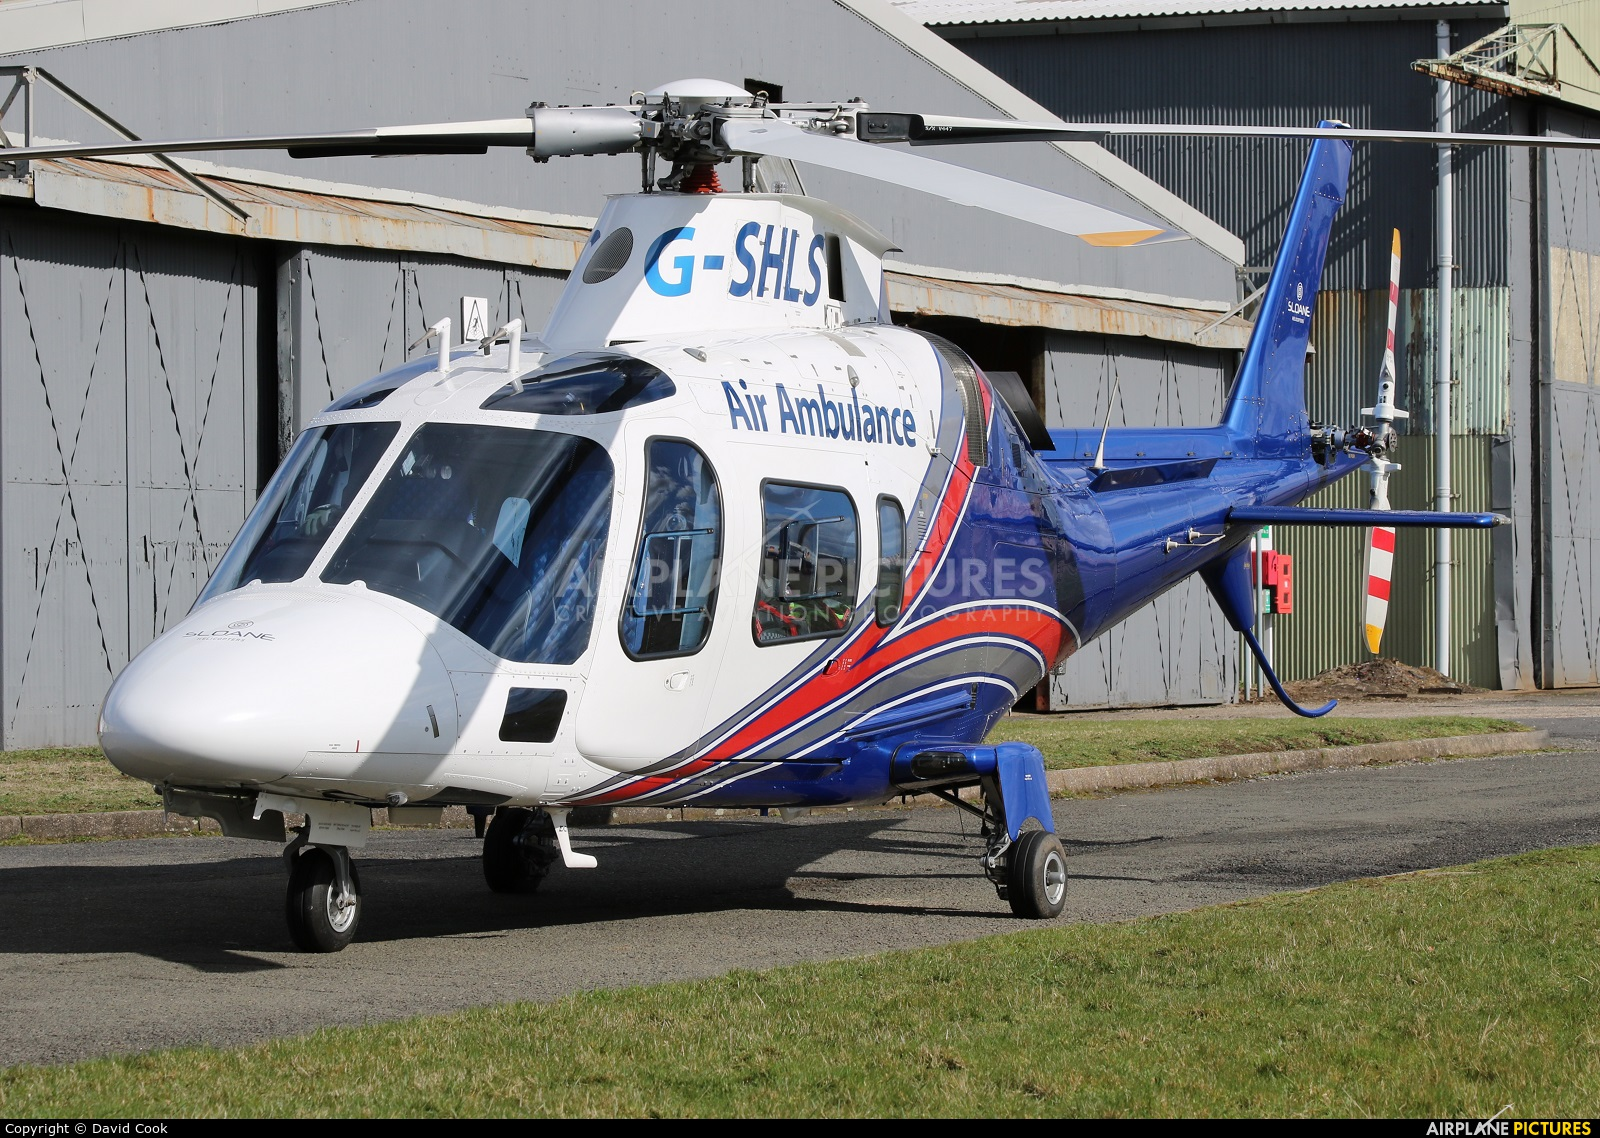 Sloane Helicopters G-SHLS aircraft at East Midlands